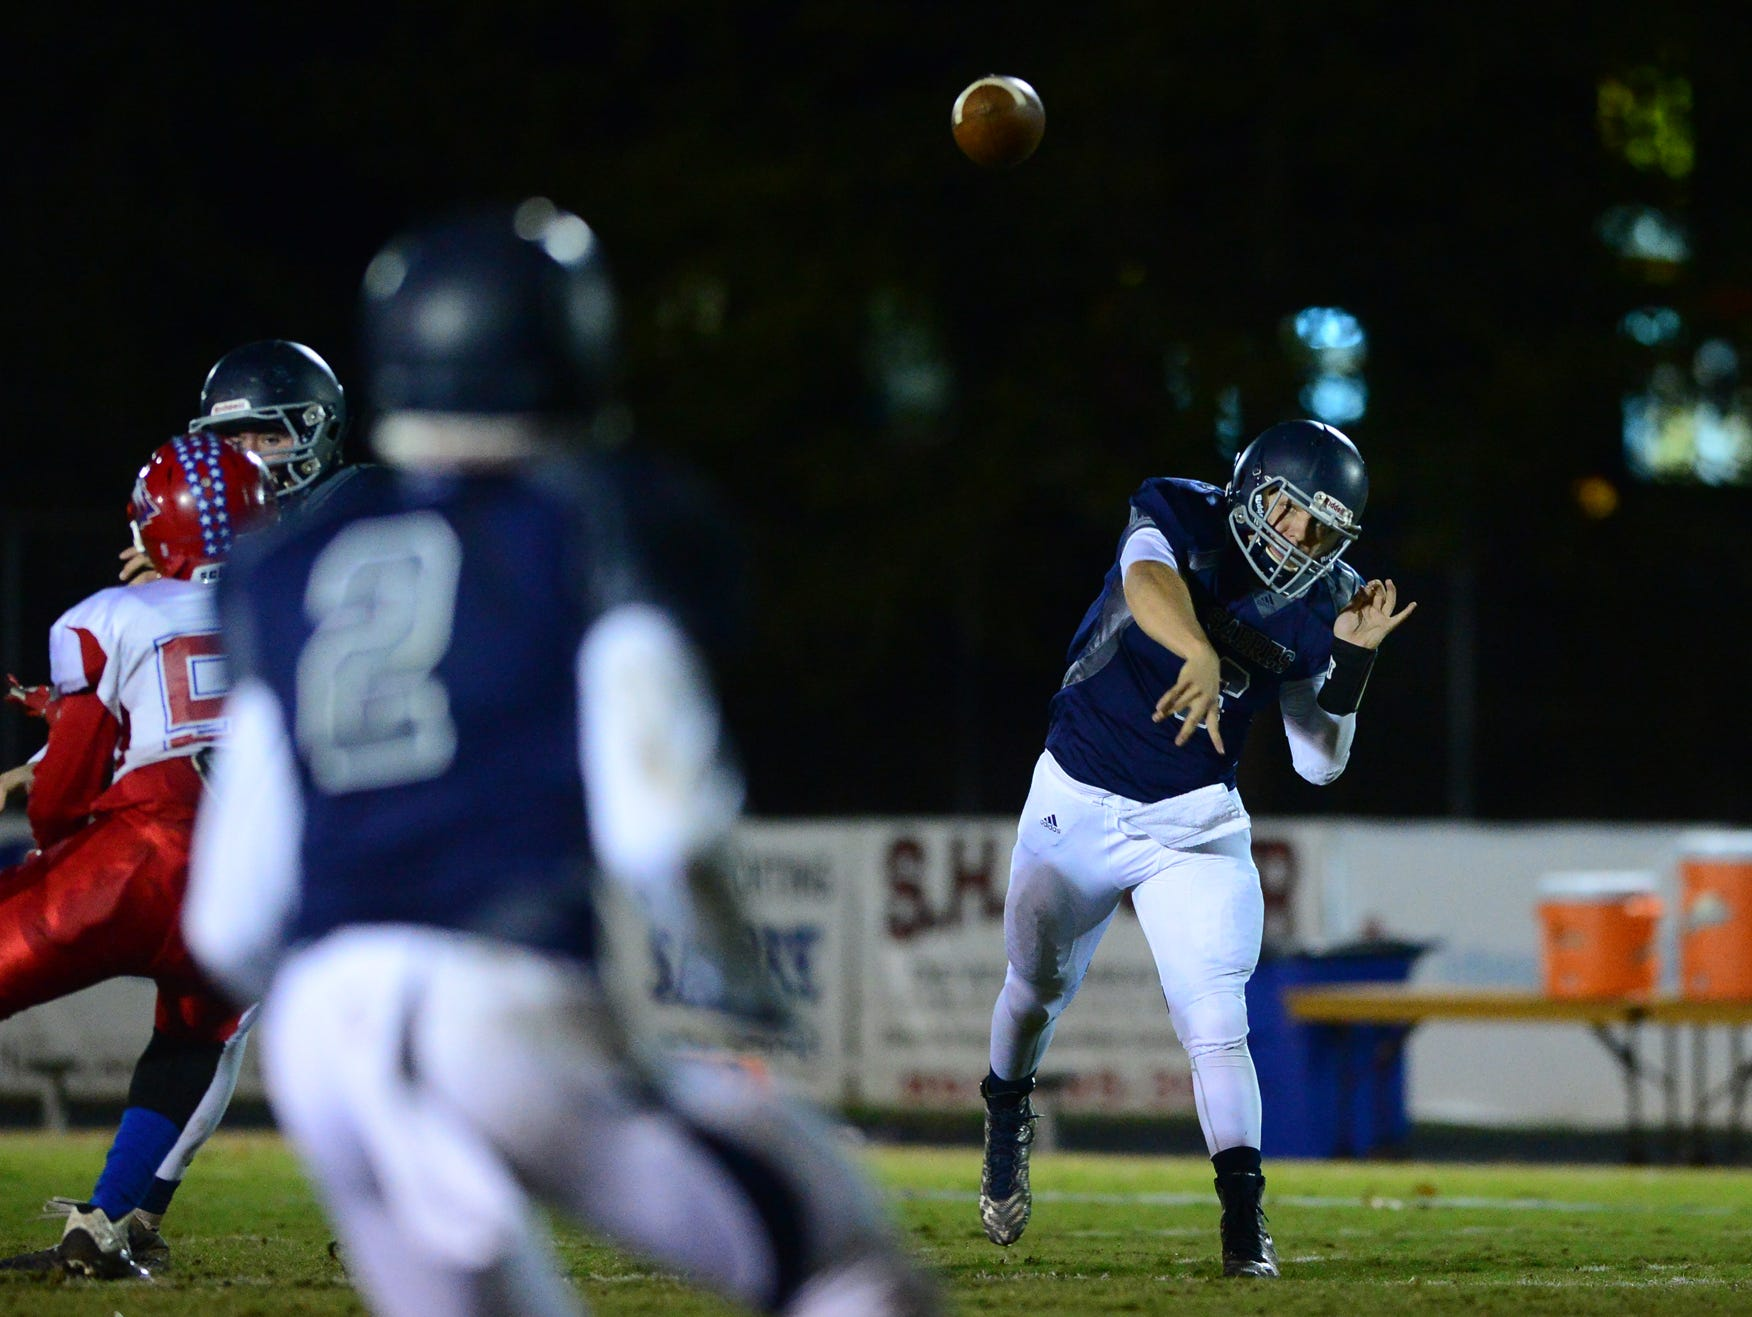 Southside Christian's Clayton Coulter (6) makes a pass to Cooper Jackson (2) during a football game against Wagener-Salley at Southside Christian on Friday.